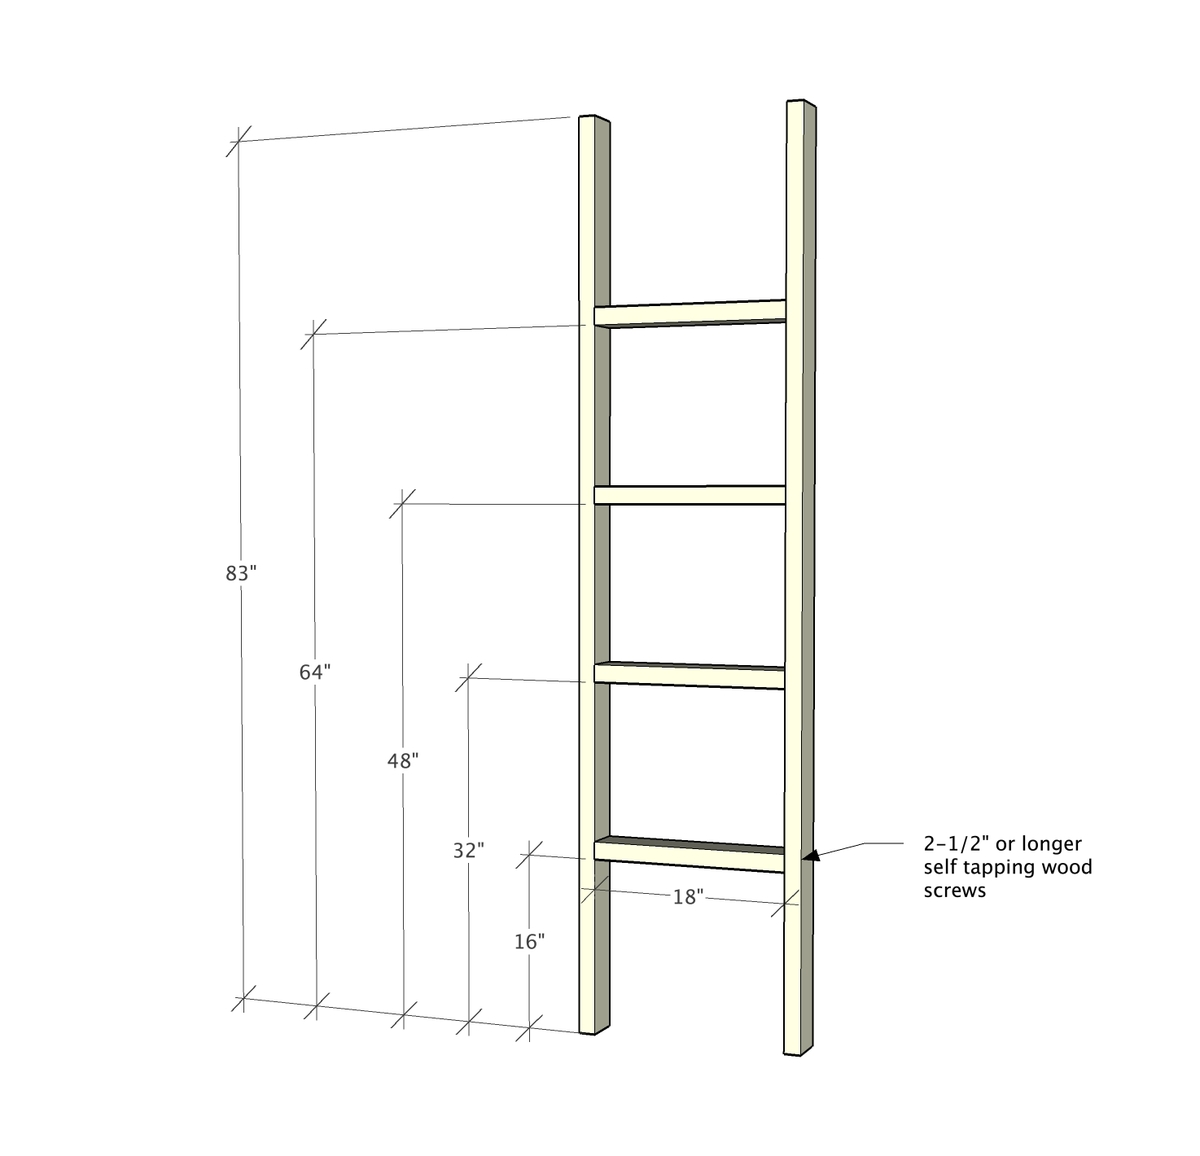 Ana White Blanket Ladder Diy Projects